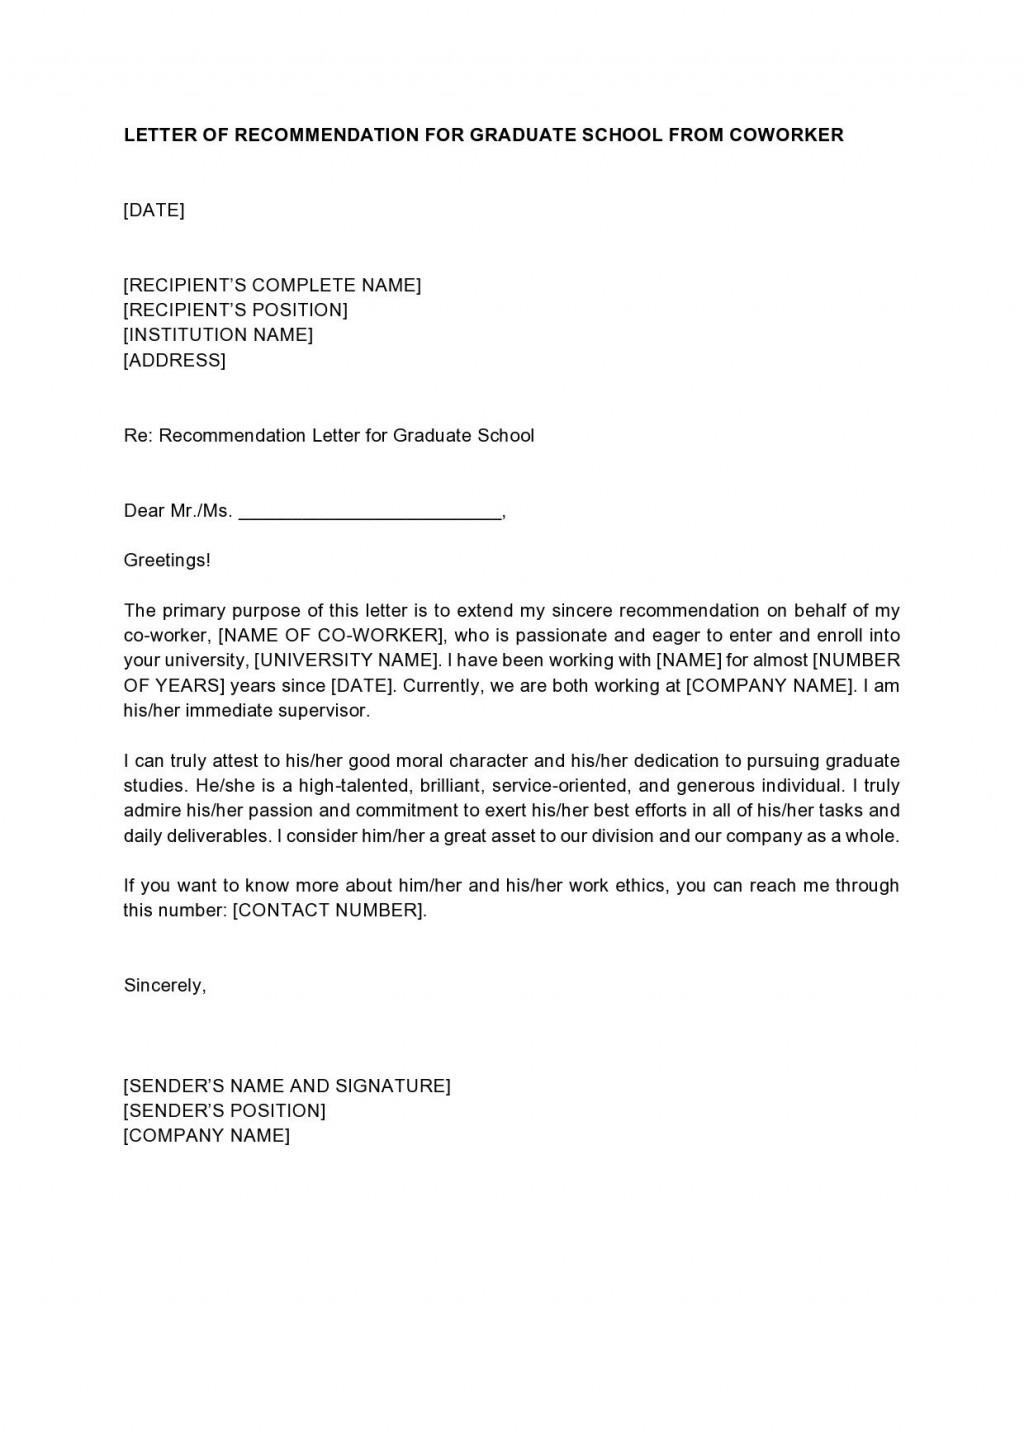 005 Striking Example Of Letter Recommendation For Graduate School From Employer High Def  Sample Pdf GradLarge